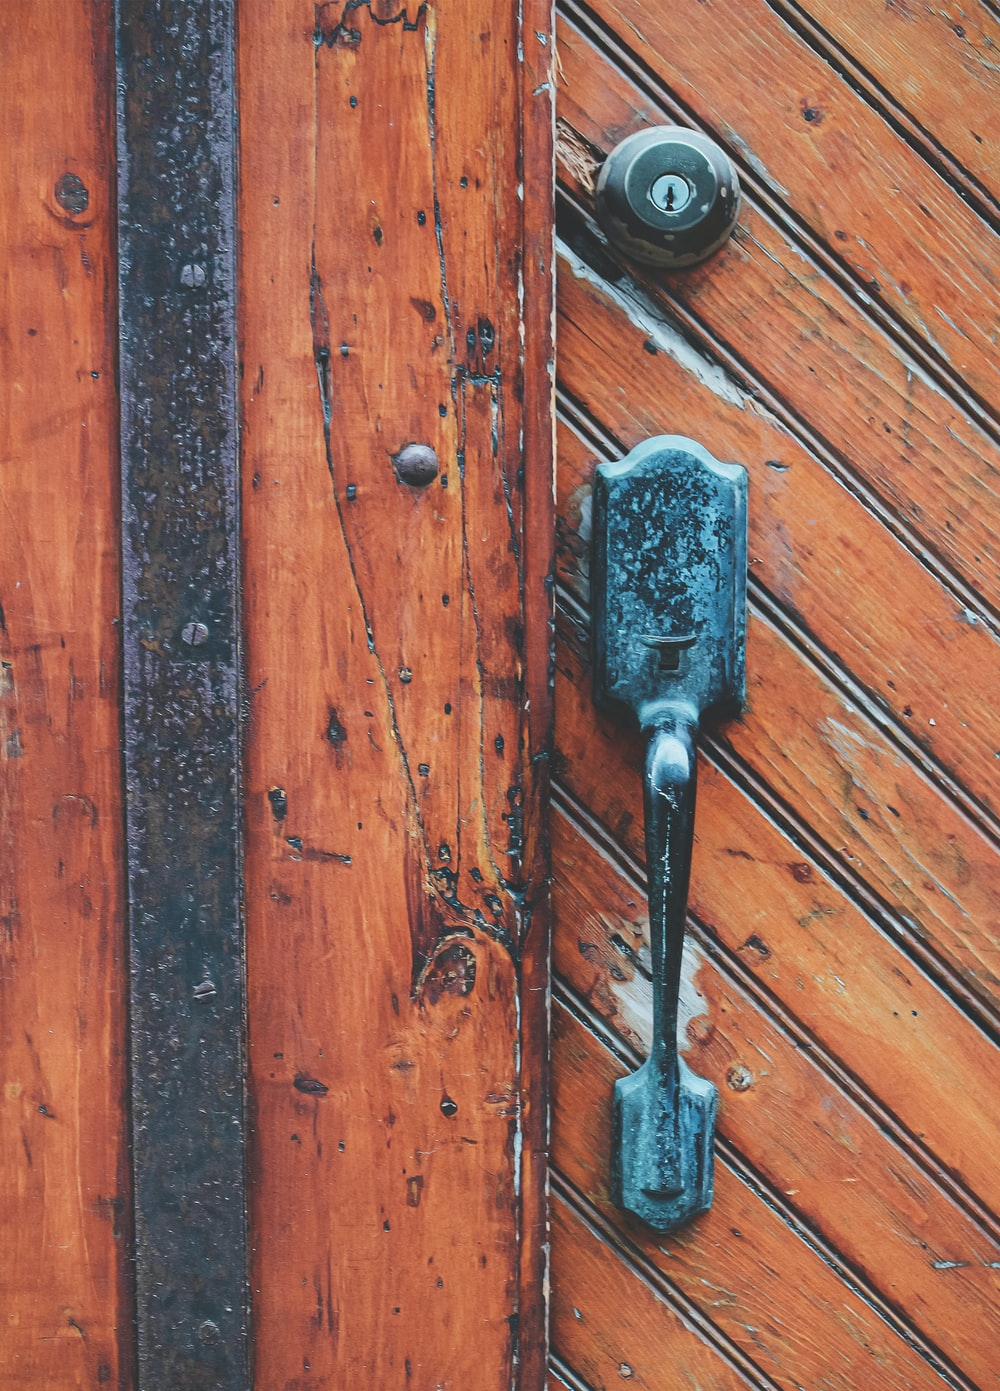 black and silver key on brown wooden surface